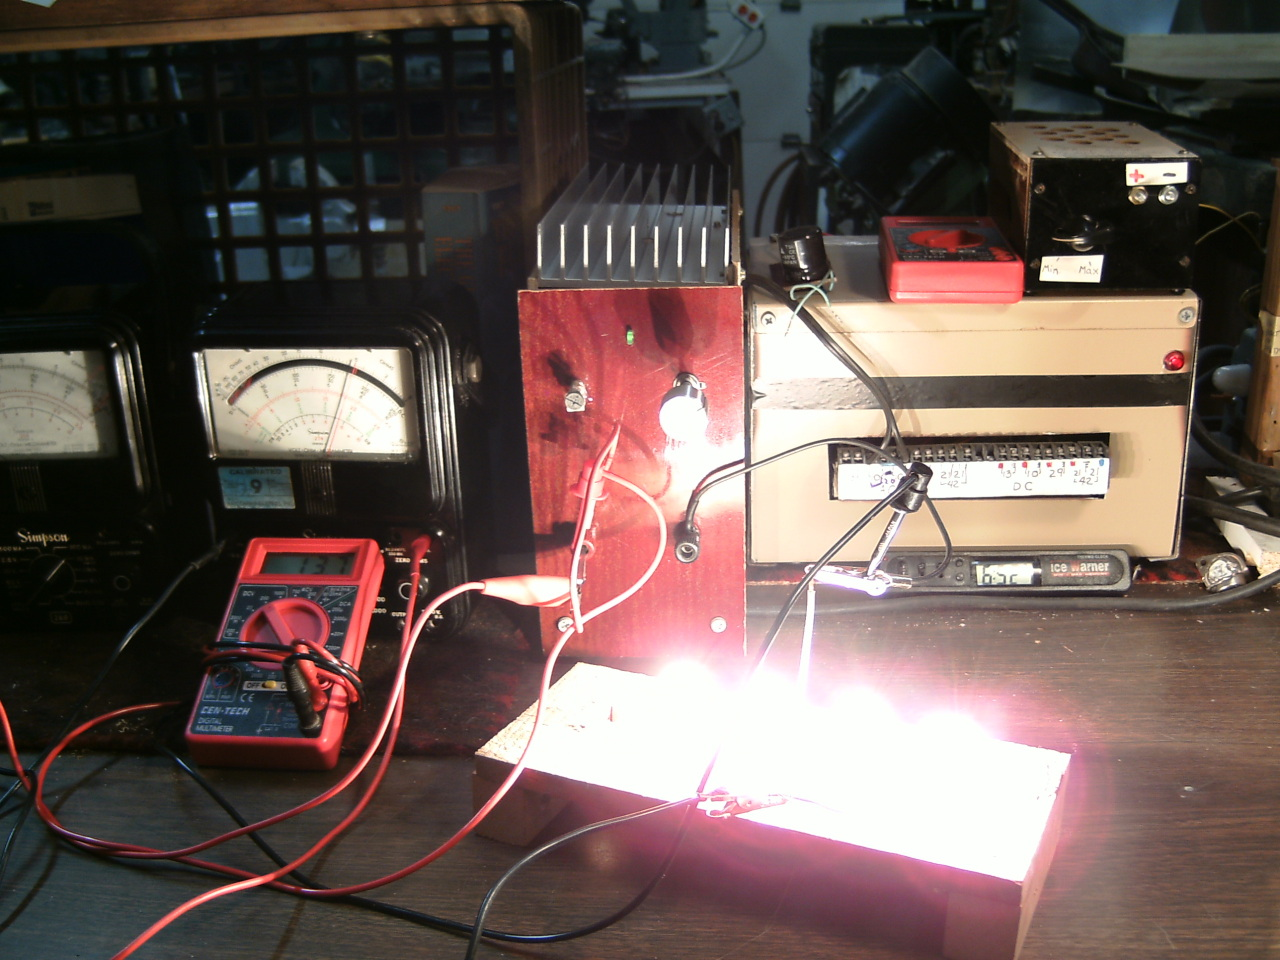 Building A Dc Constant Current Power Electric Load Hackaday Electronic Circuit Design Simulate That Is When The Light Bulb Should Go Off Or Come On Rather